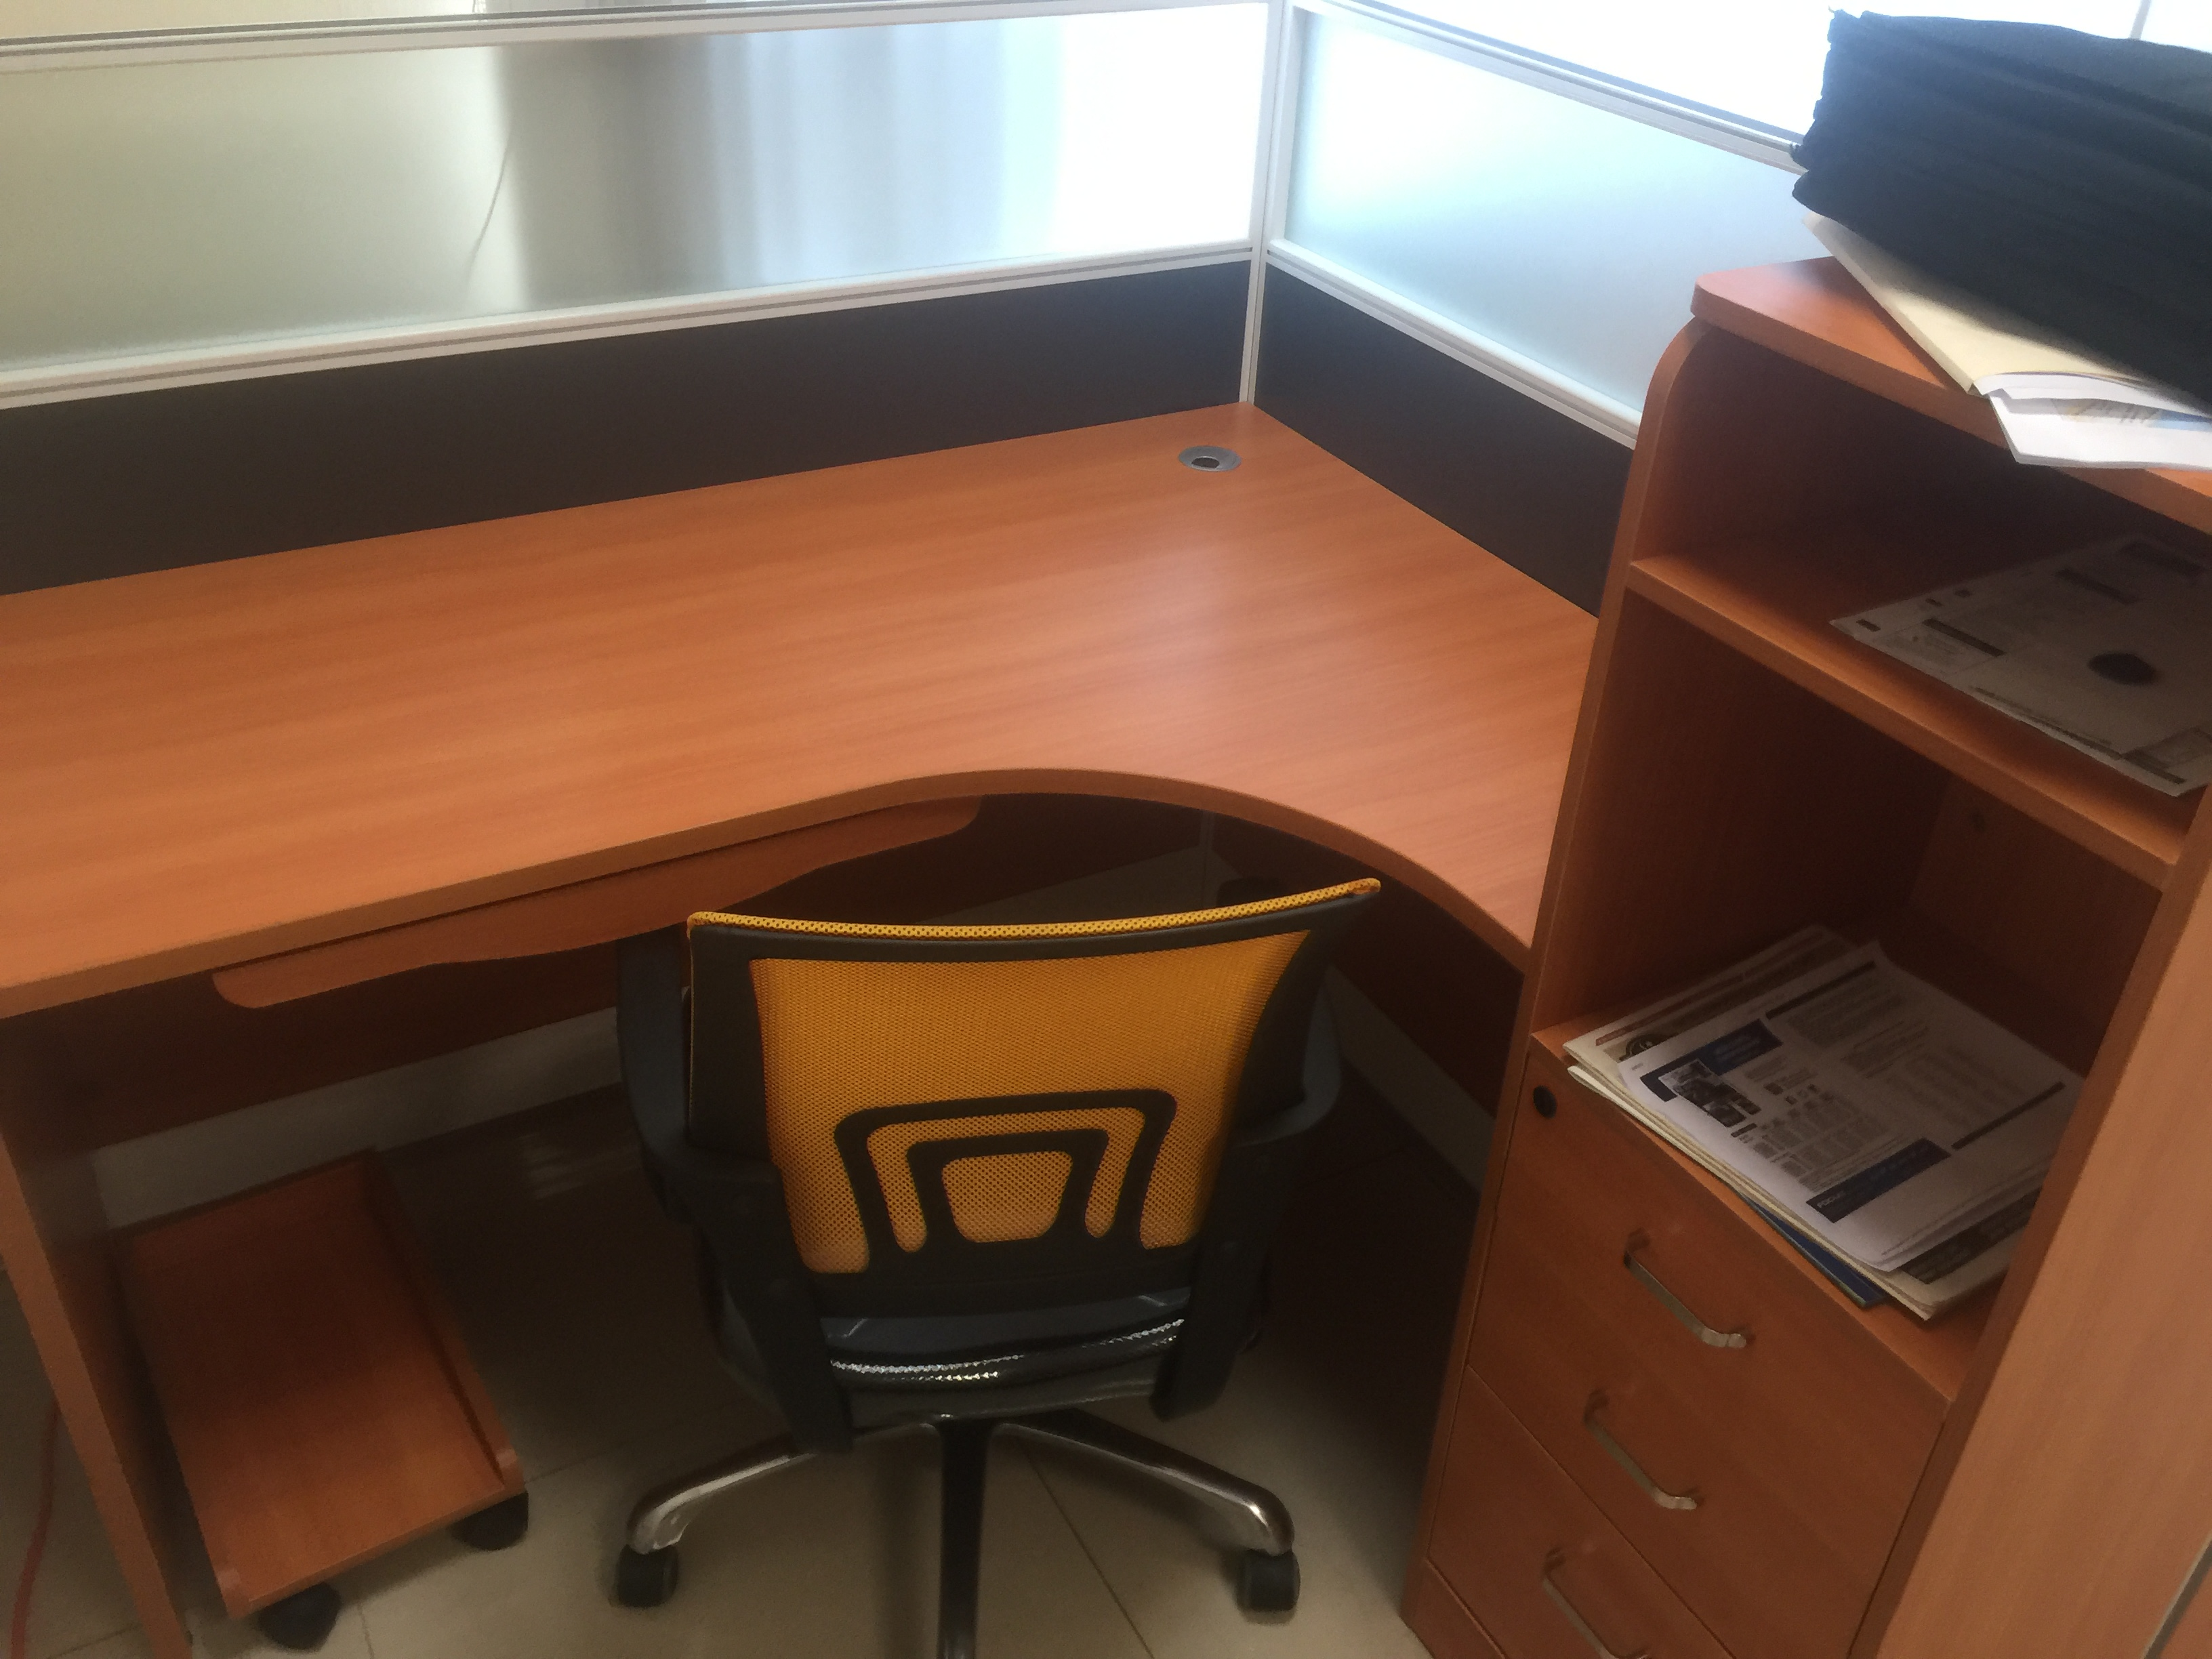 Three Cubical Desks and Chairs - $400